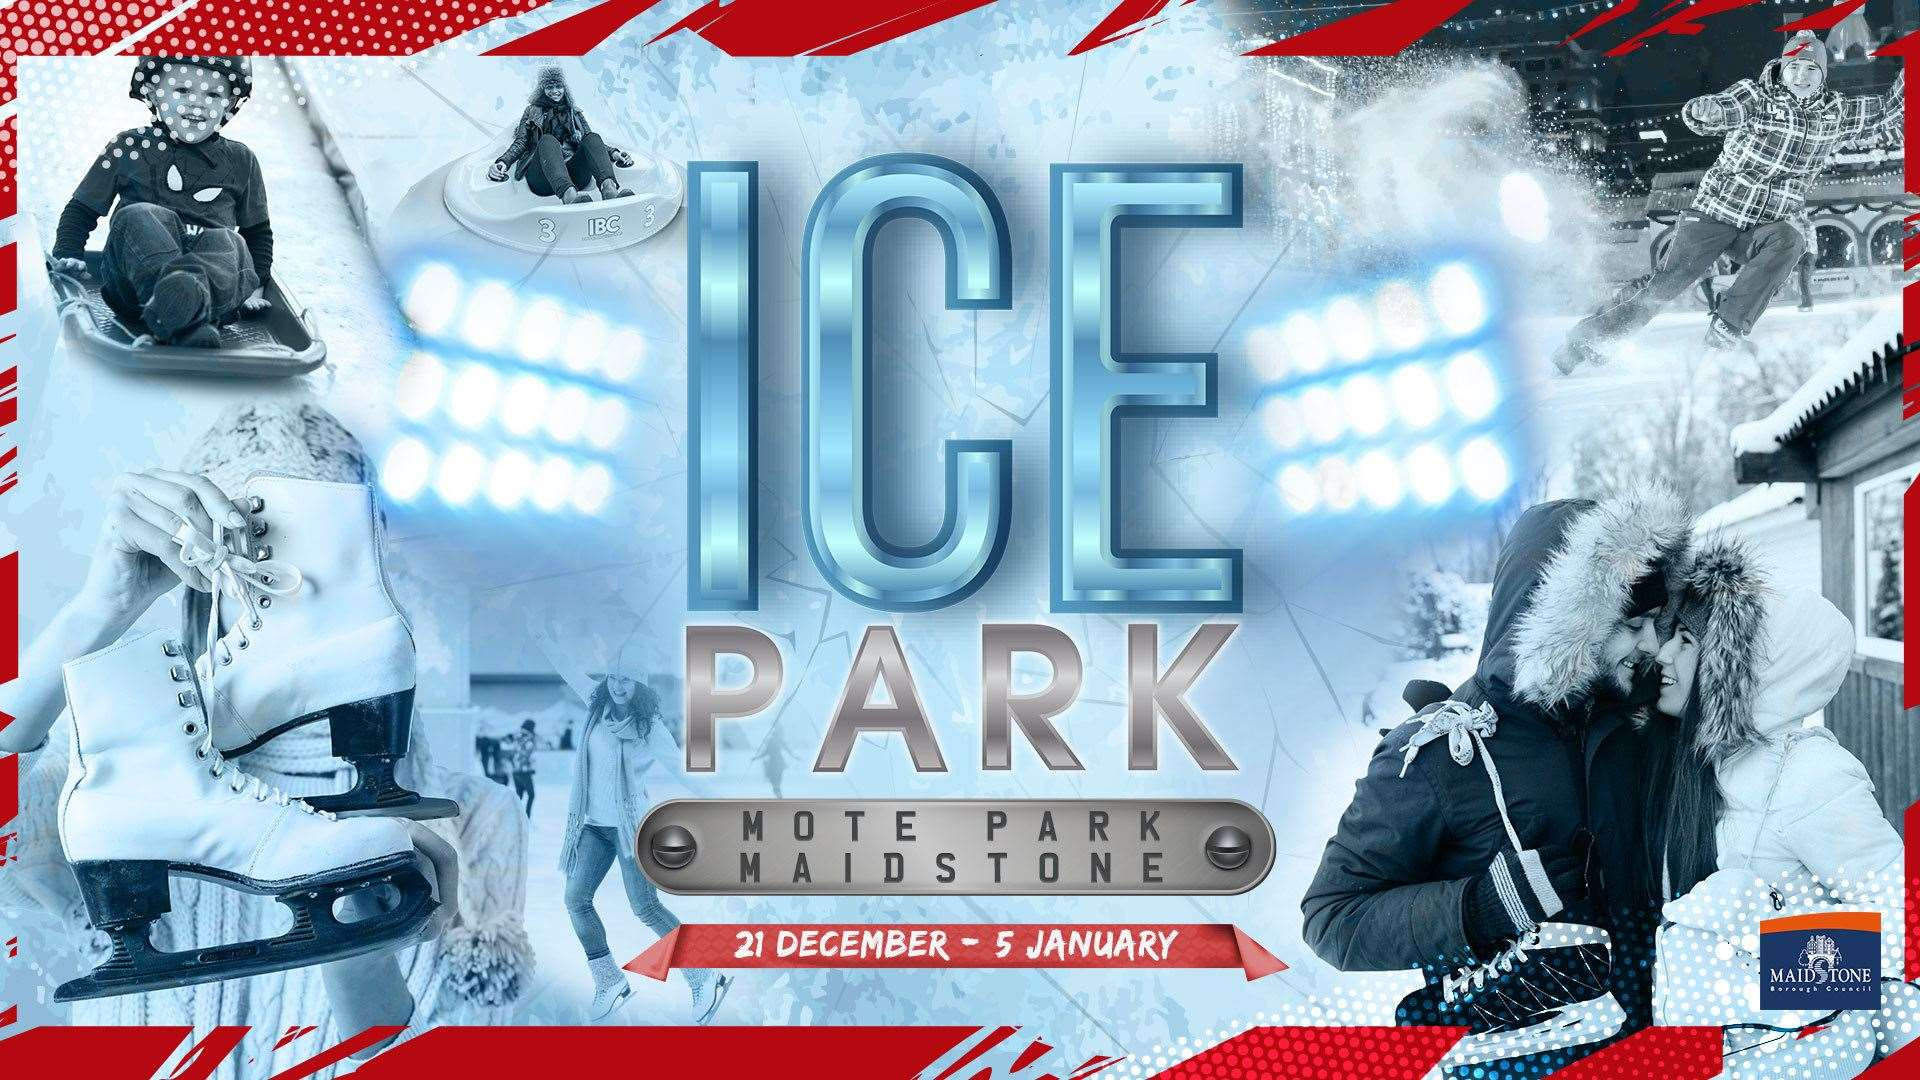 An Ice Park will not be coming to Maidstone this Christmas